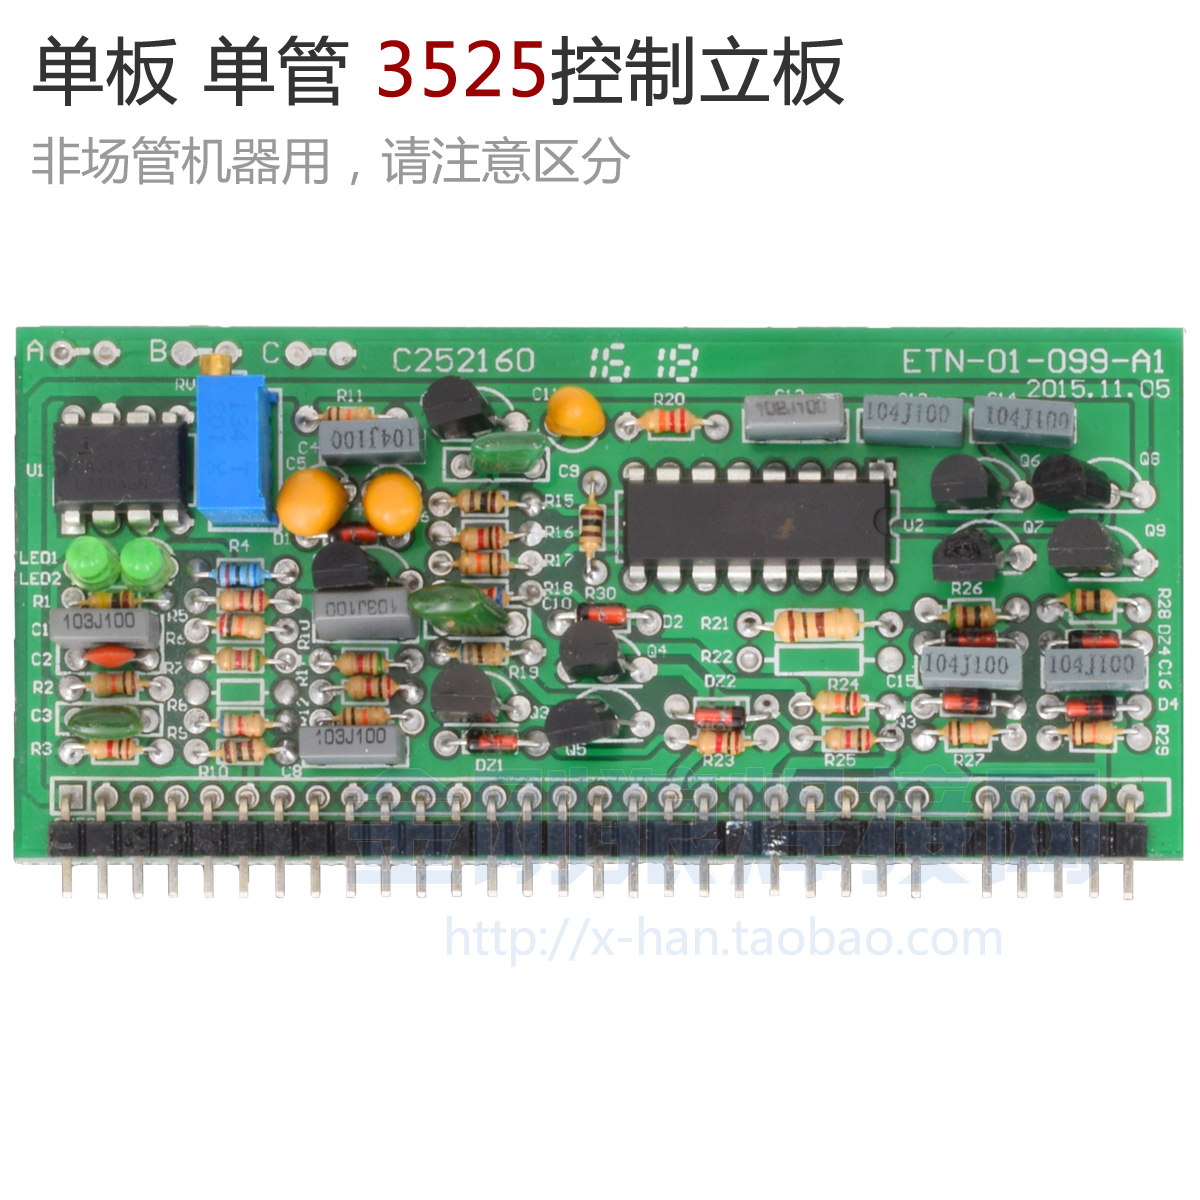 small resolution of mosfet small control module wtih chip 3525 for zx7 tig inverter welding machine with adjustable potentiometer